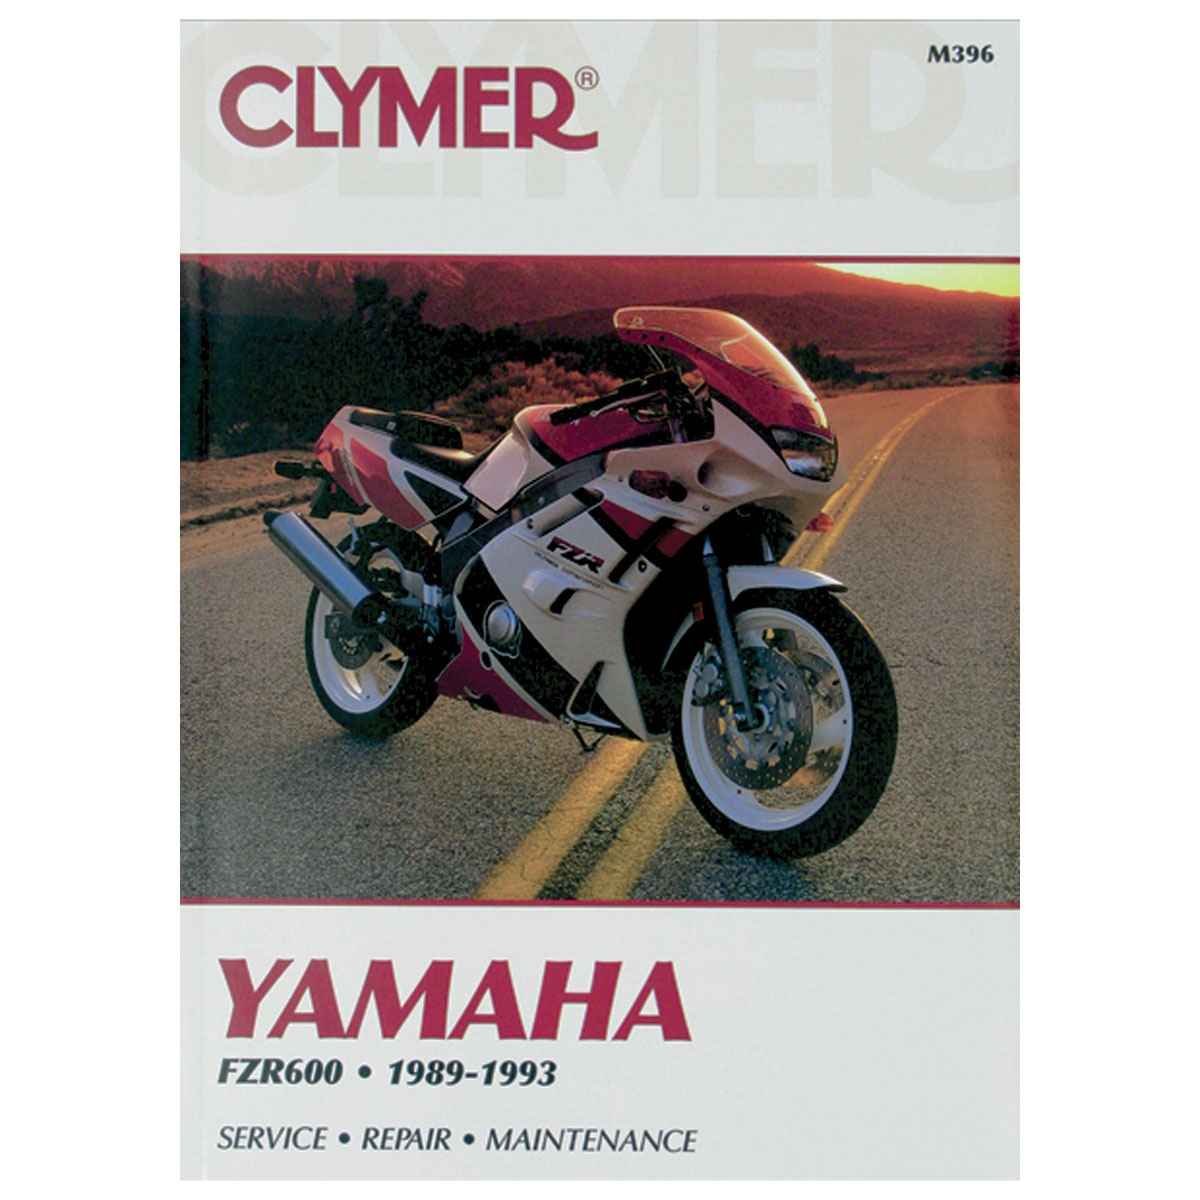 clymer yamaha motorcycle repair manual 181 2322 j p cycles rh jpcycles com Yamaha Scooter Service Manuals New Yamaha Xmax Scooters Motorcycles